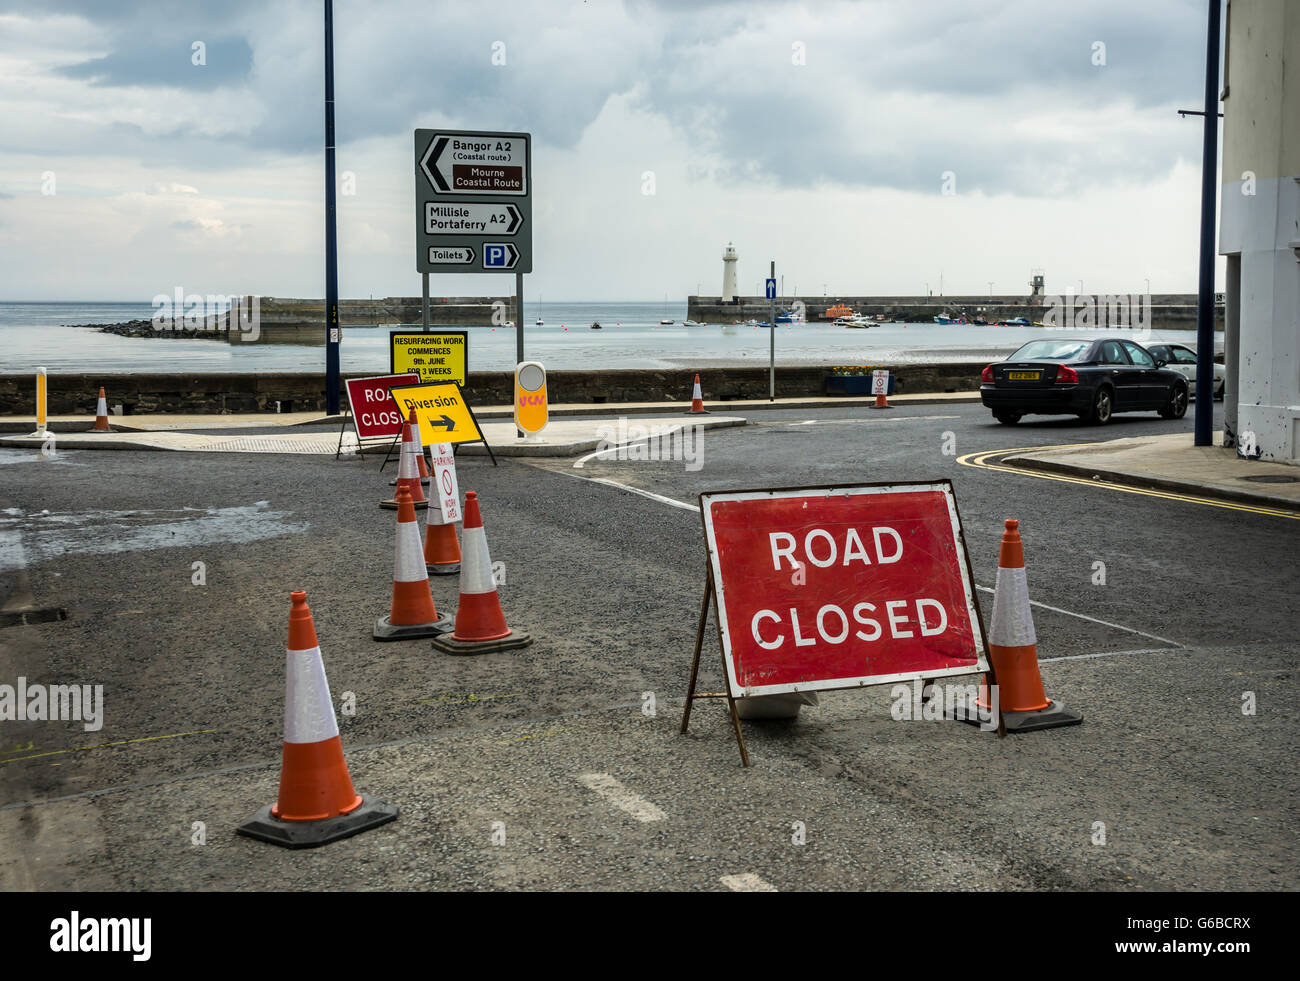 Donaghadee, County Down, UK  24th June 2016  Roadworks and signage  Roadsigns with Donaghadee lighthouse and harbour - Stock Image